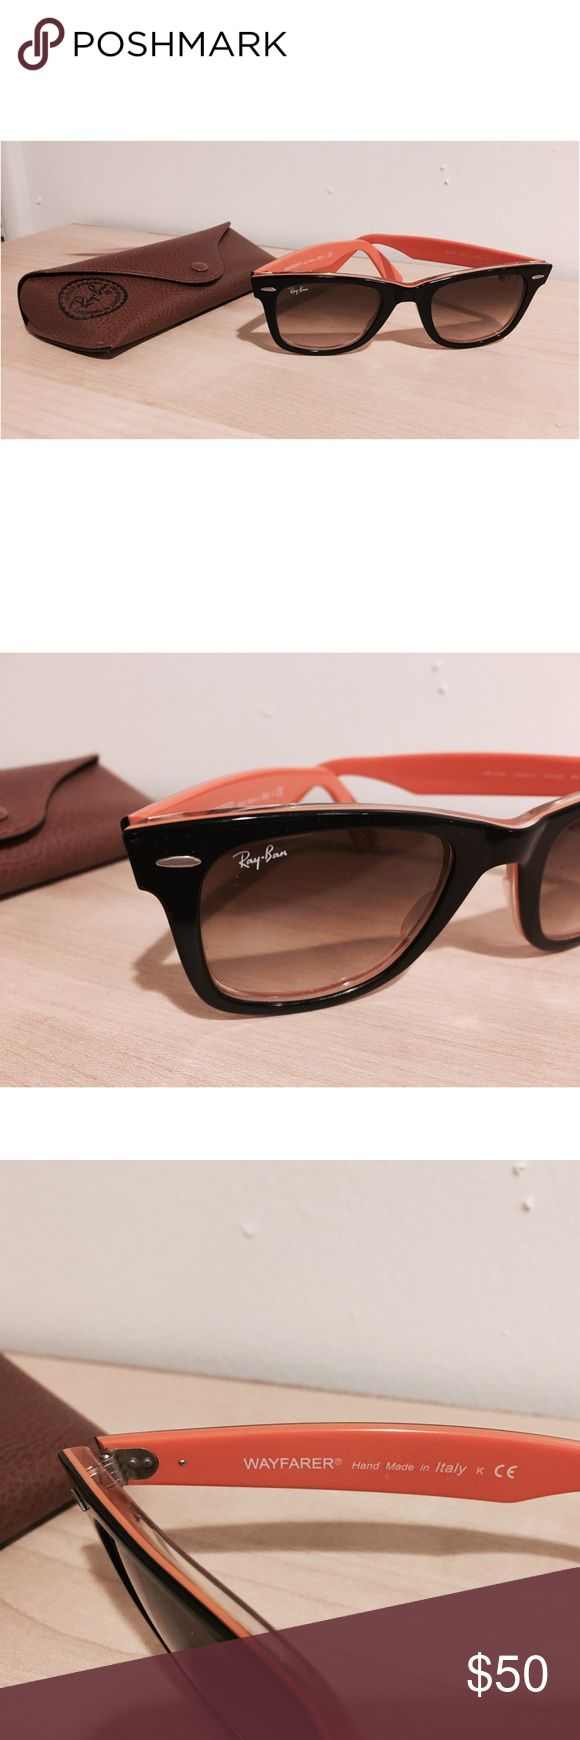 Ray-Ban Wayfarer Black/Orange Sunglasses RB2140 Basically New! No scratches. Only worn a handful of times. See photos for sizing information. Comes with original cleaning cloth and case. Model upon request! Please ask if you need any specific measurements 😊  Purchased at Sunglass Hut! Ray-Ban Accessories Sunglasses